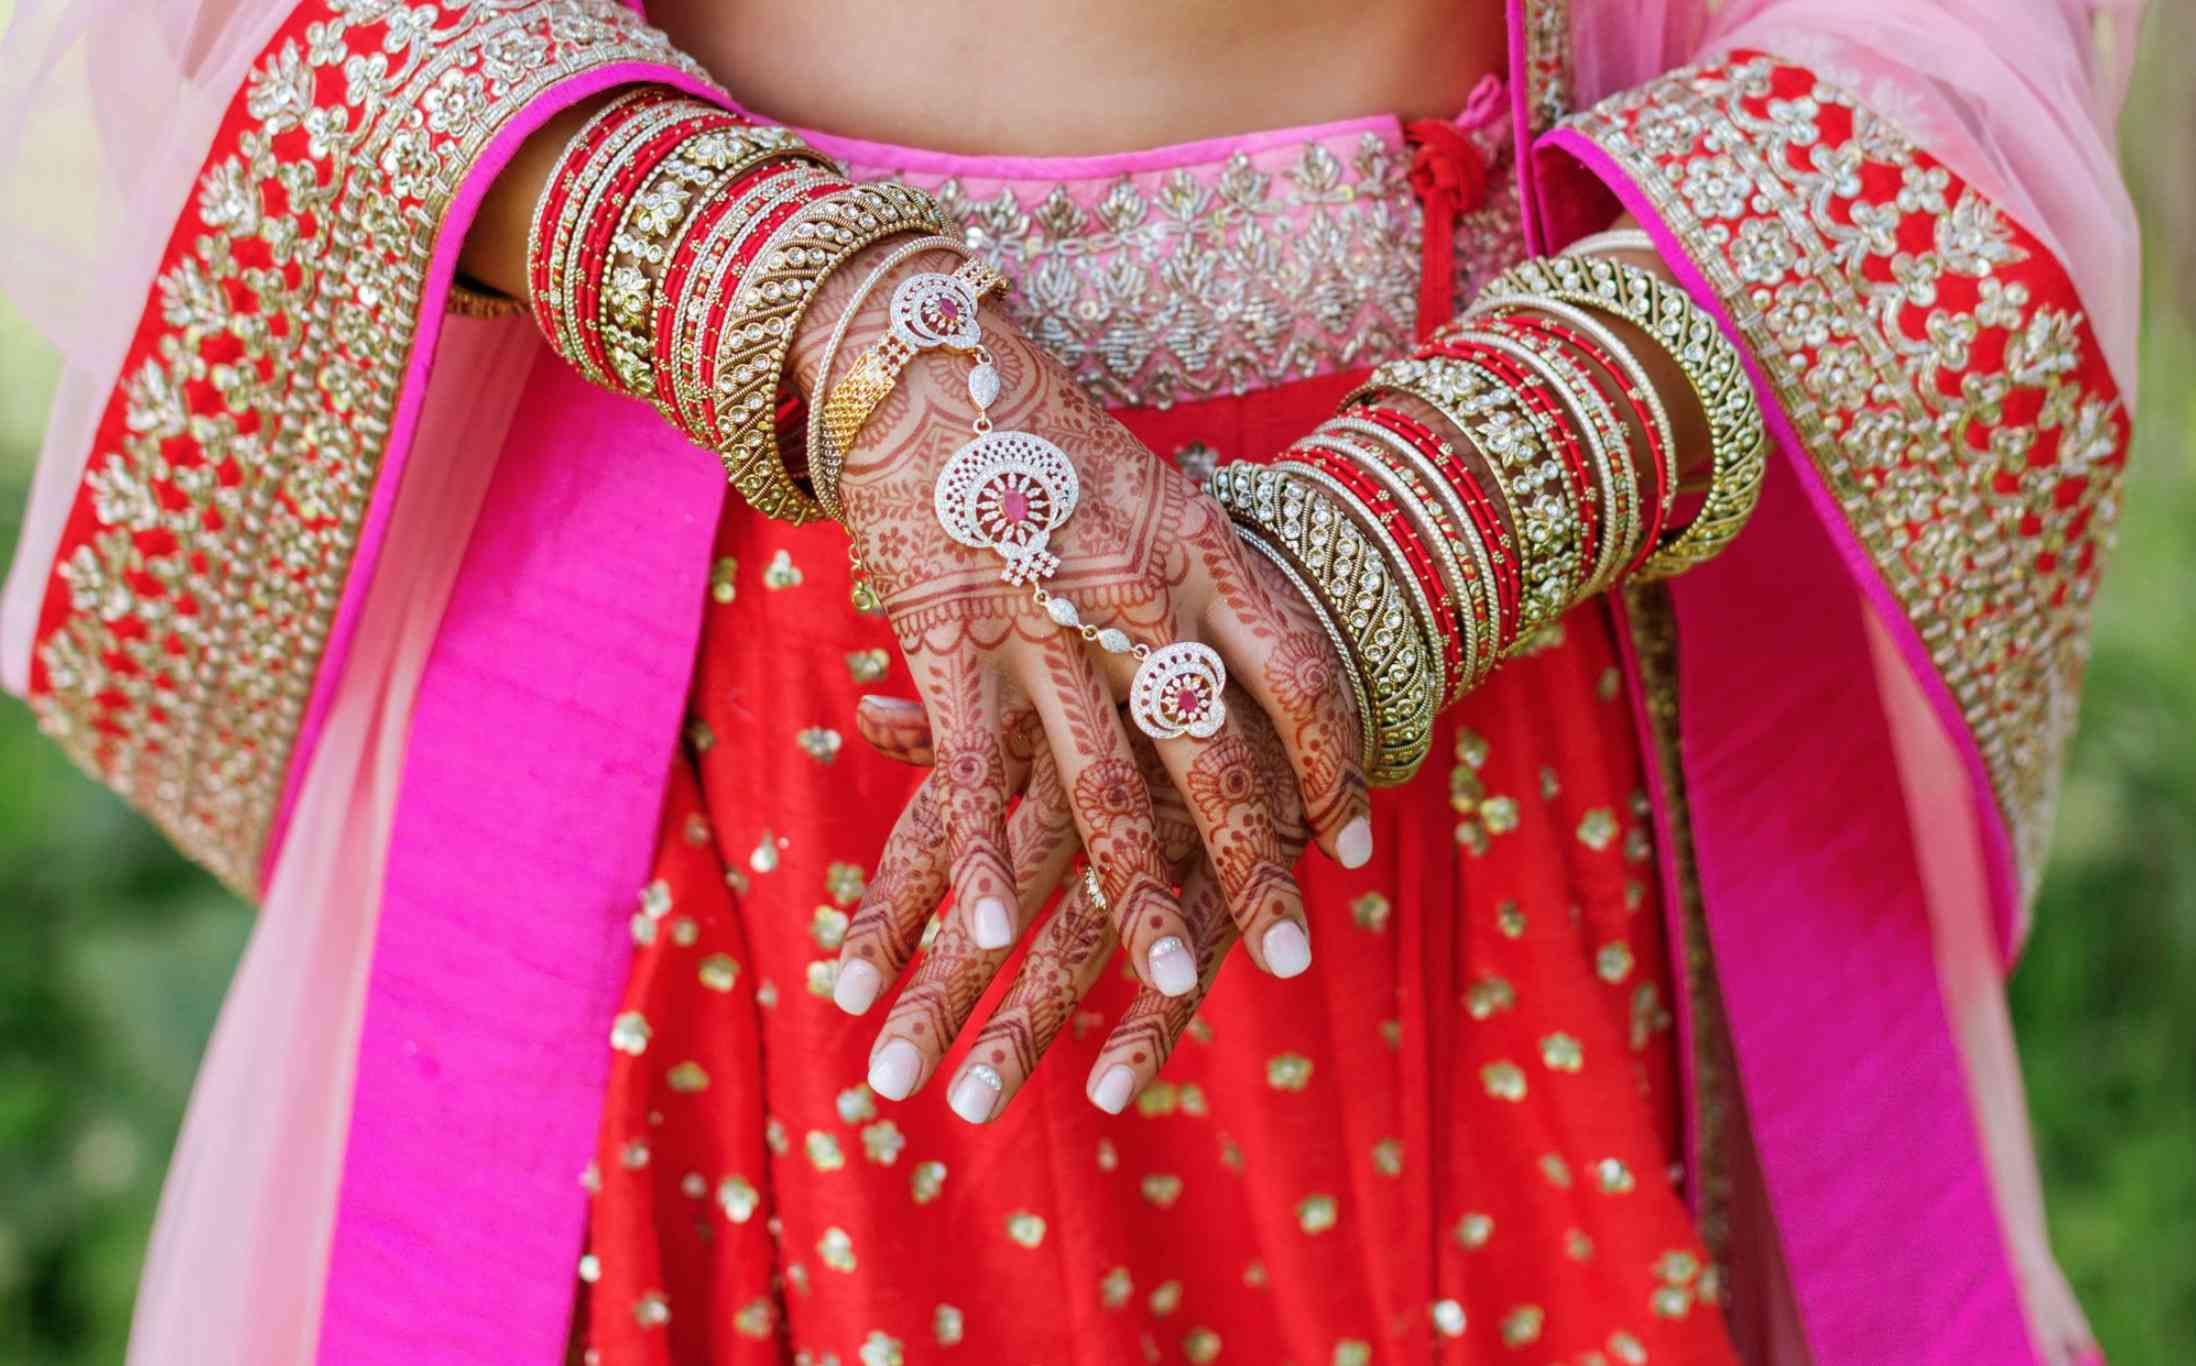 Bride with henna tattooed hands with white nail polish with rhinestone embellishments